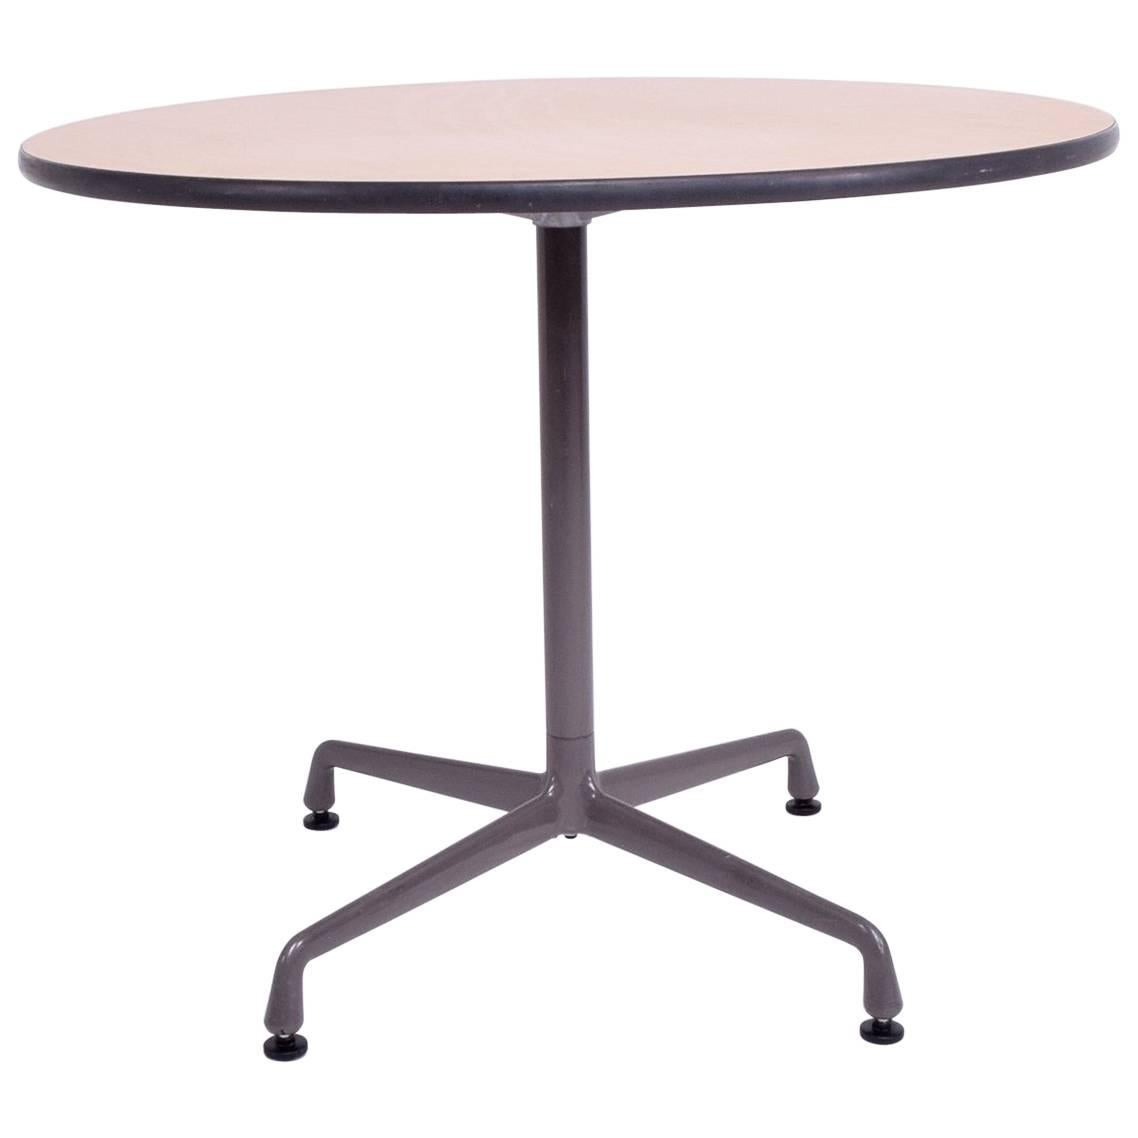 Gentil Herman Miller Eames Round Aluminum Group Table